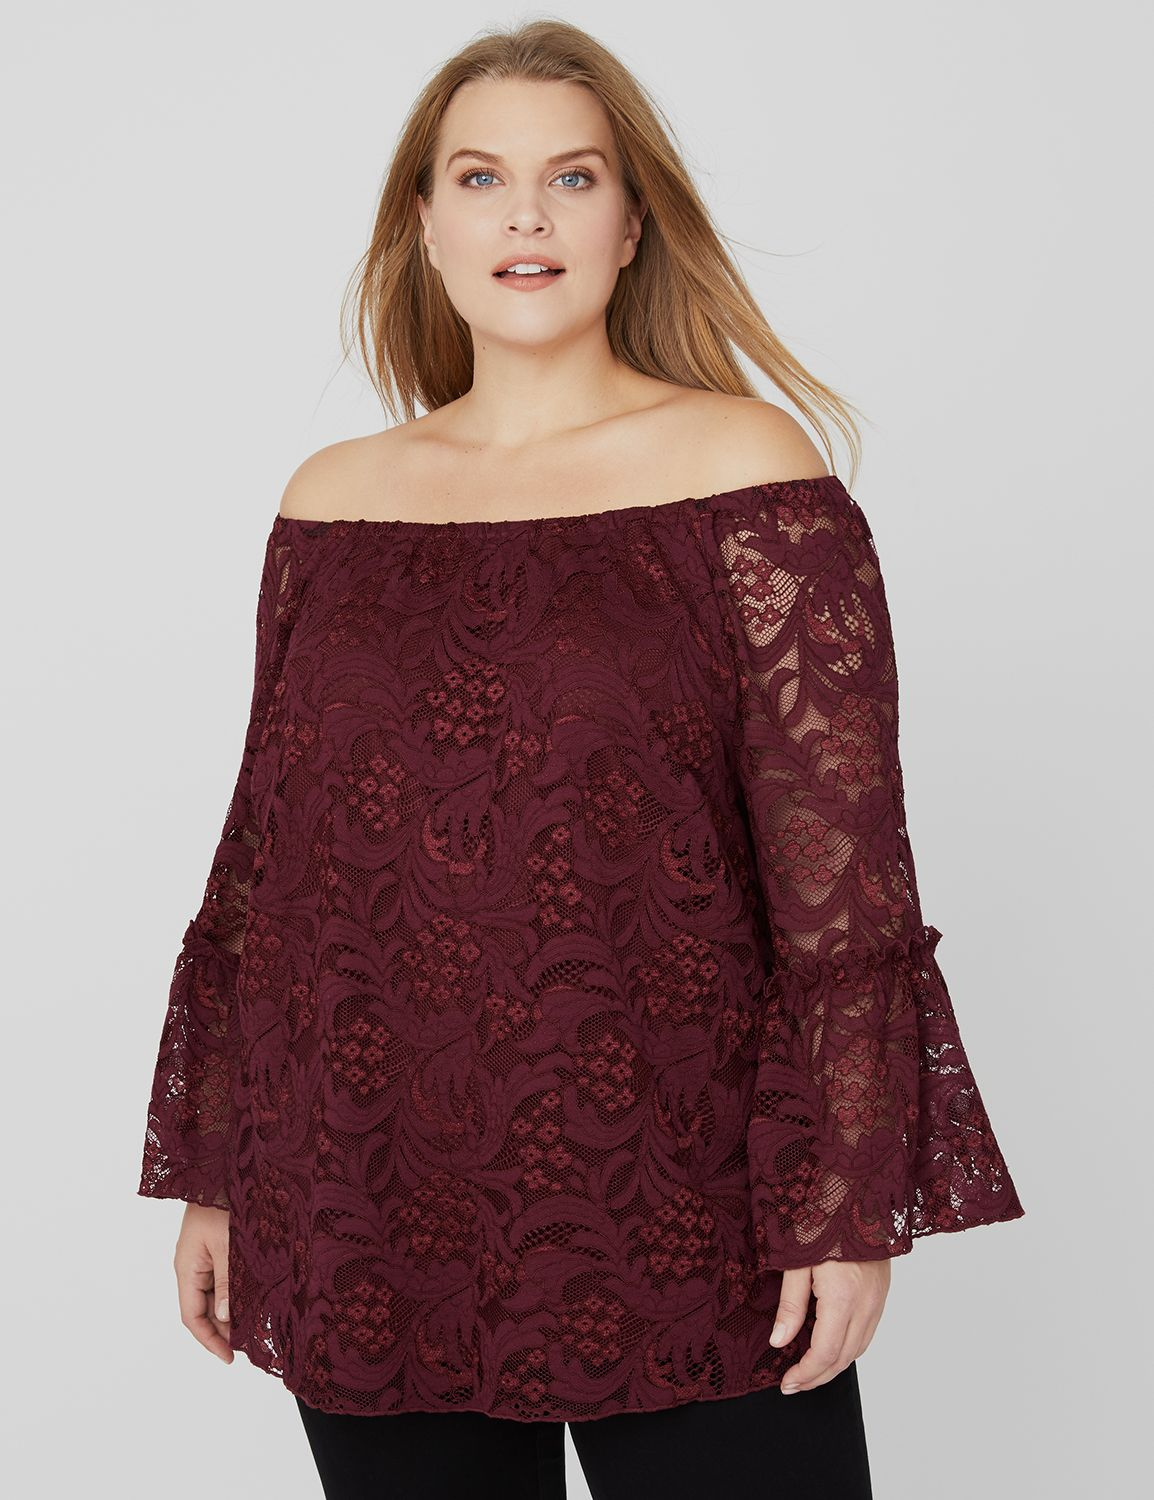 Image result for lace off the shoulder top catherines